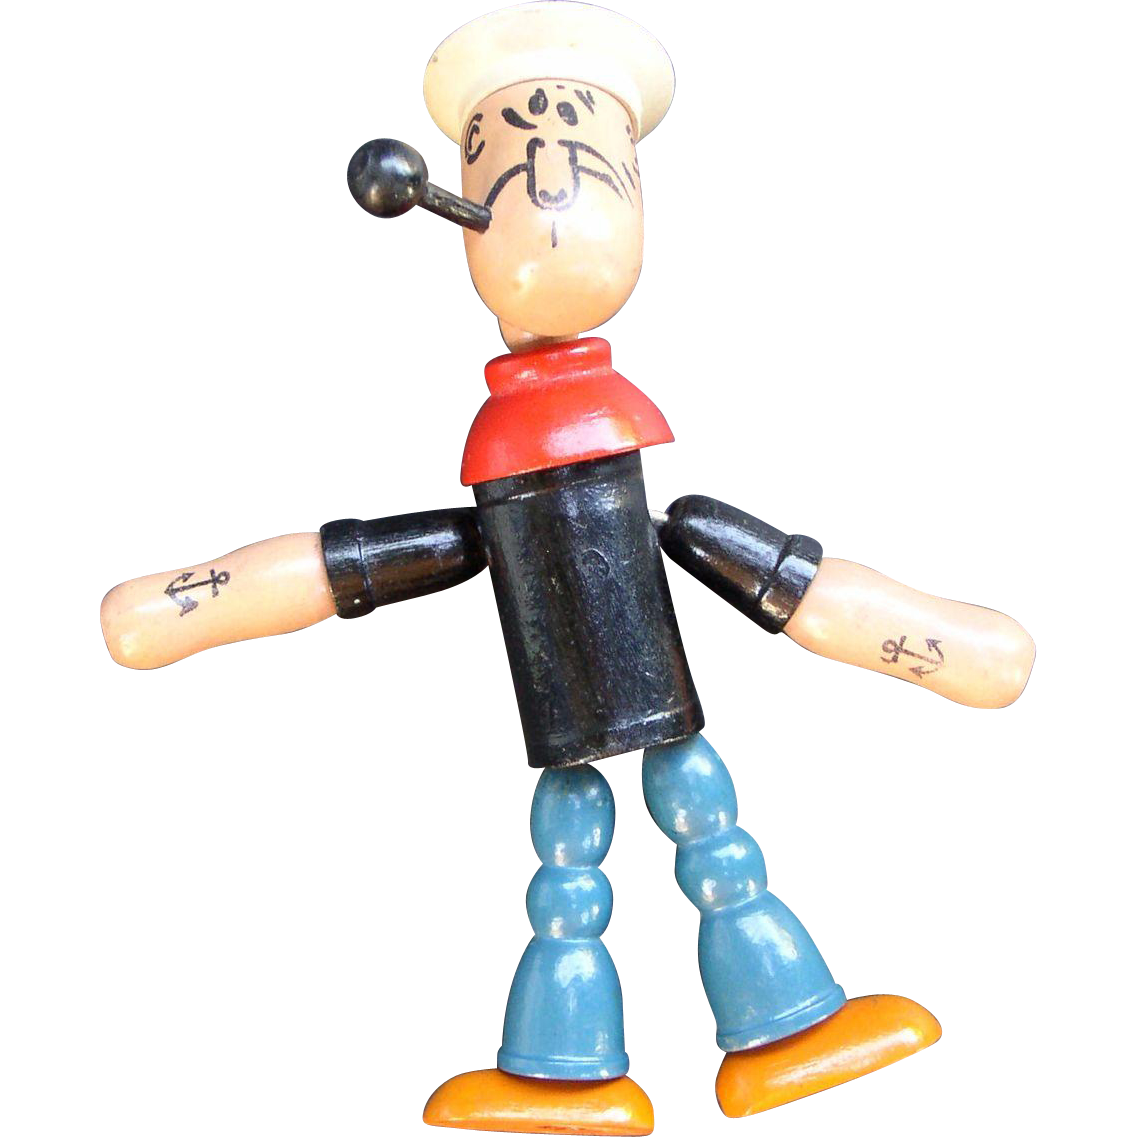 Popeye 1930's Wooden Jointed Figure